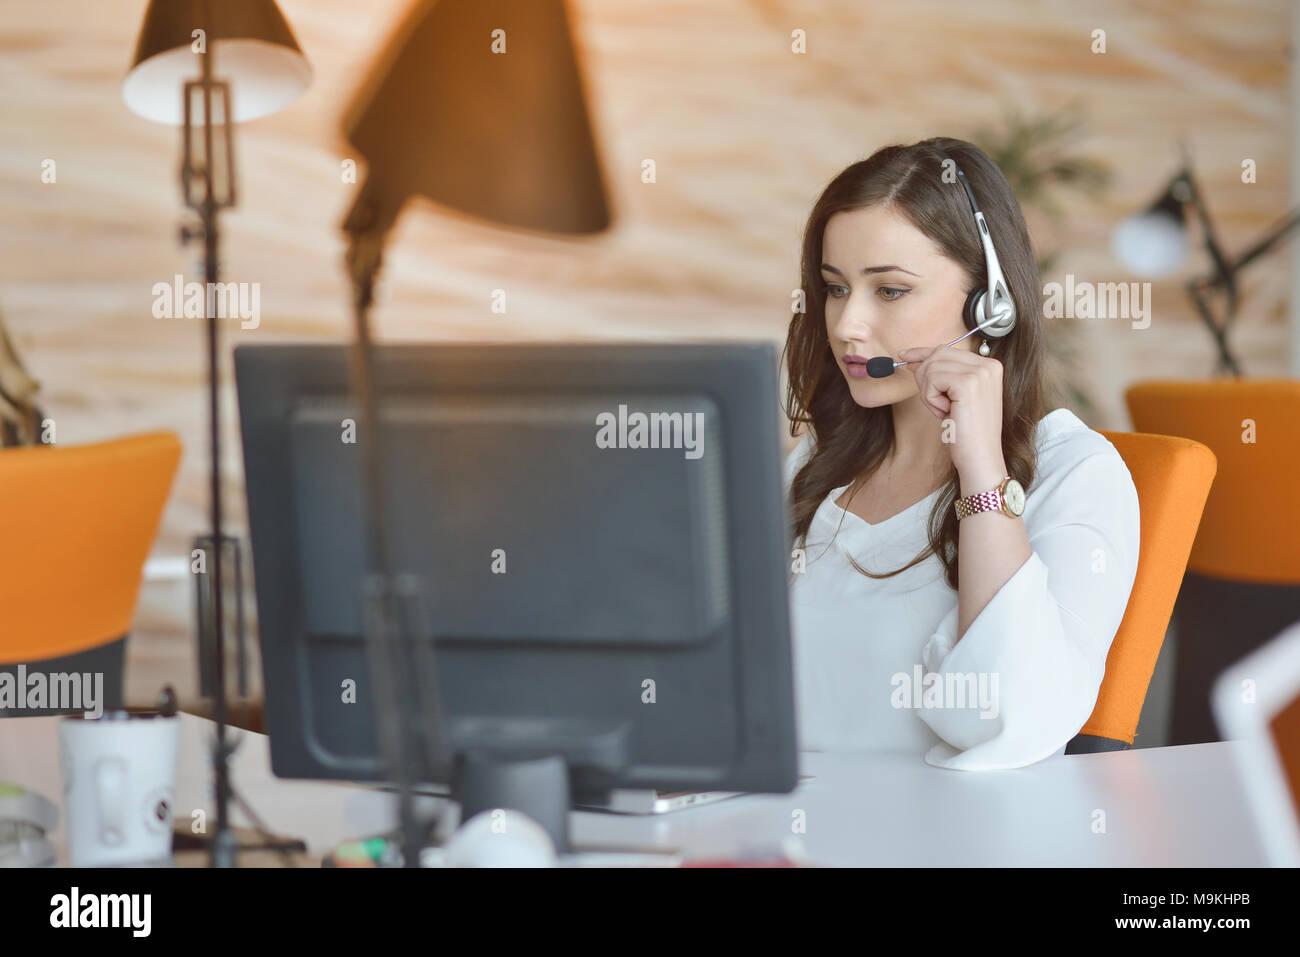 Attractive woman listening to music while working in startup business office - Stock Image